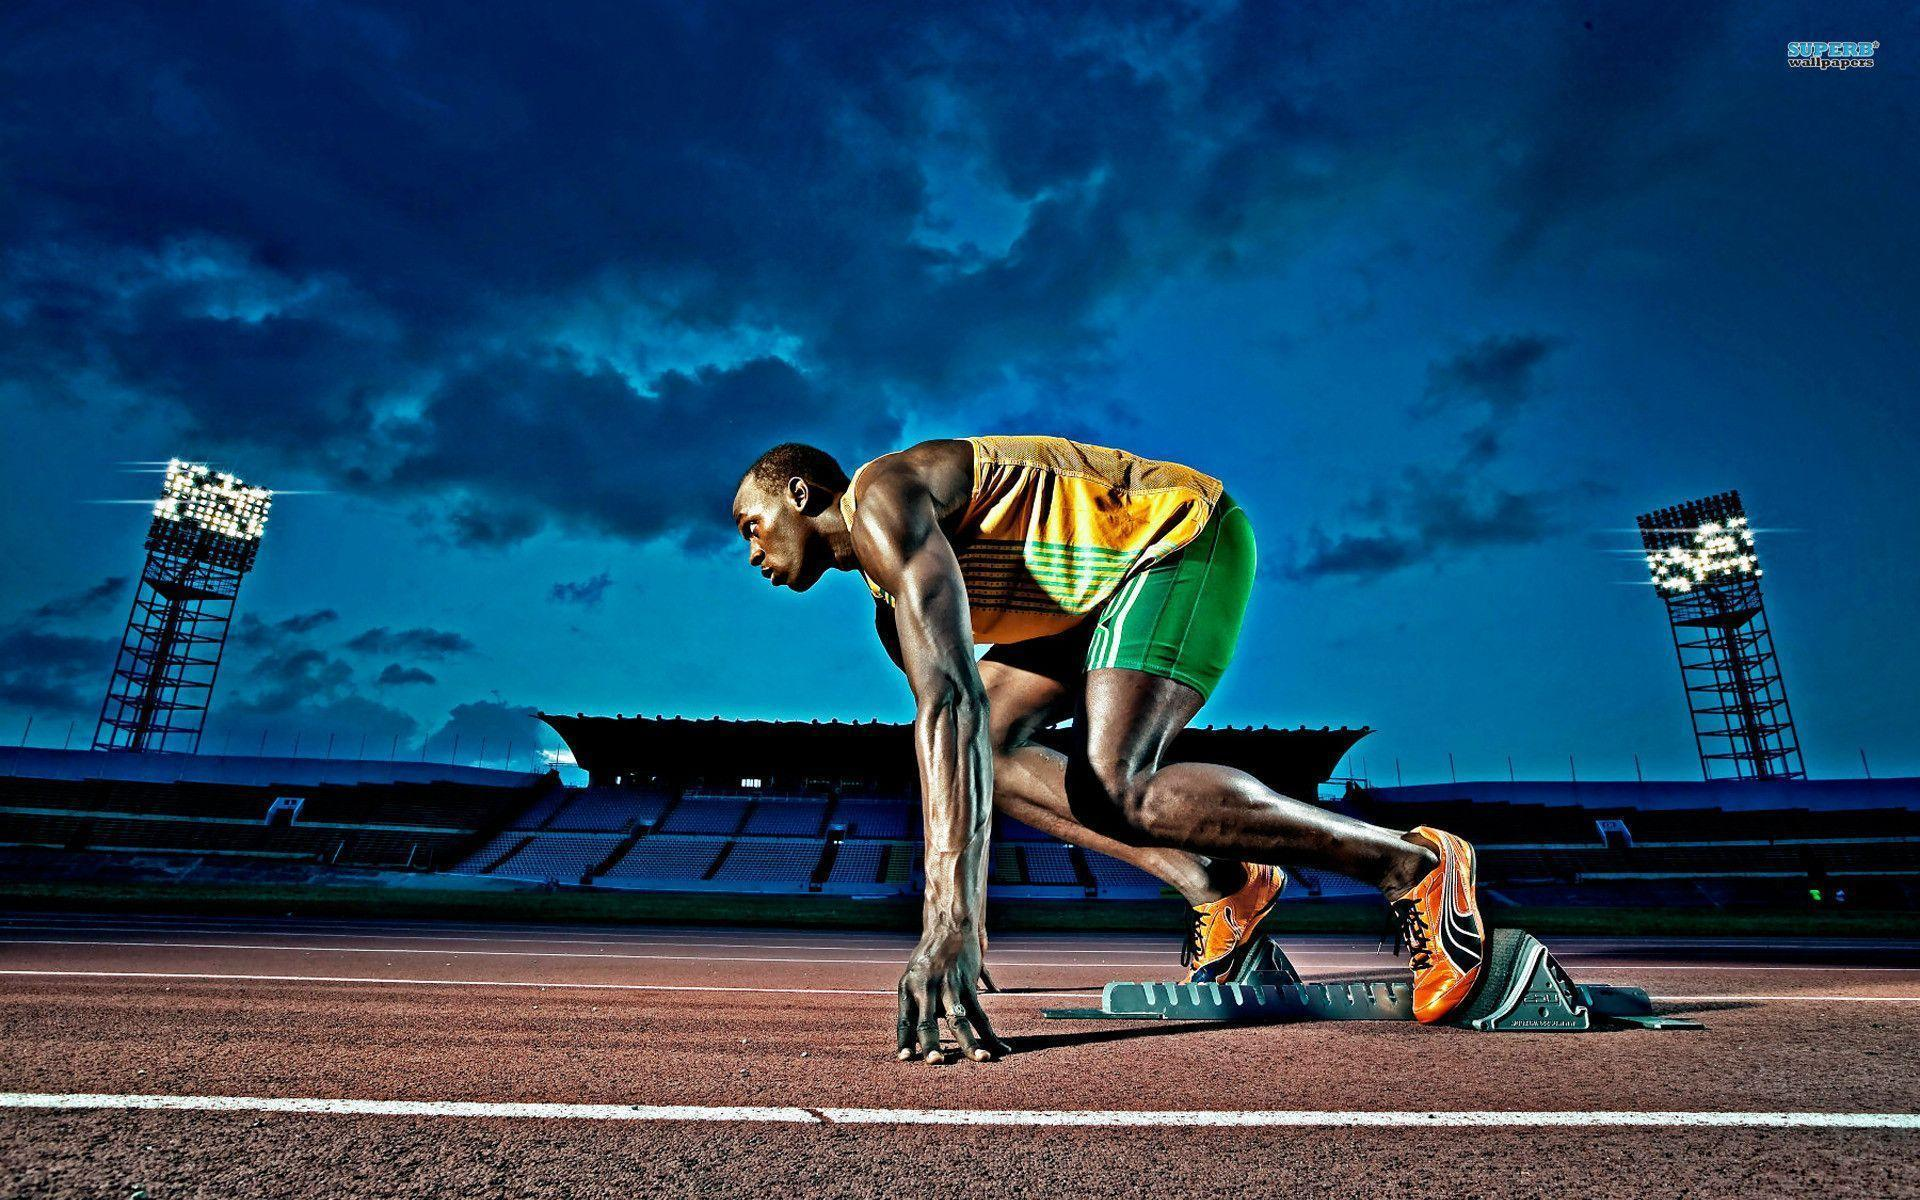 Fonds d'écran Usain Bolt : tous les wallpapers Usain Bolt